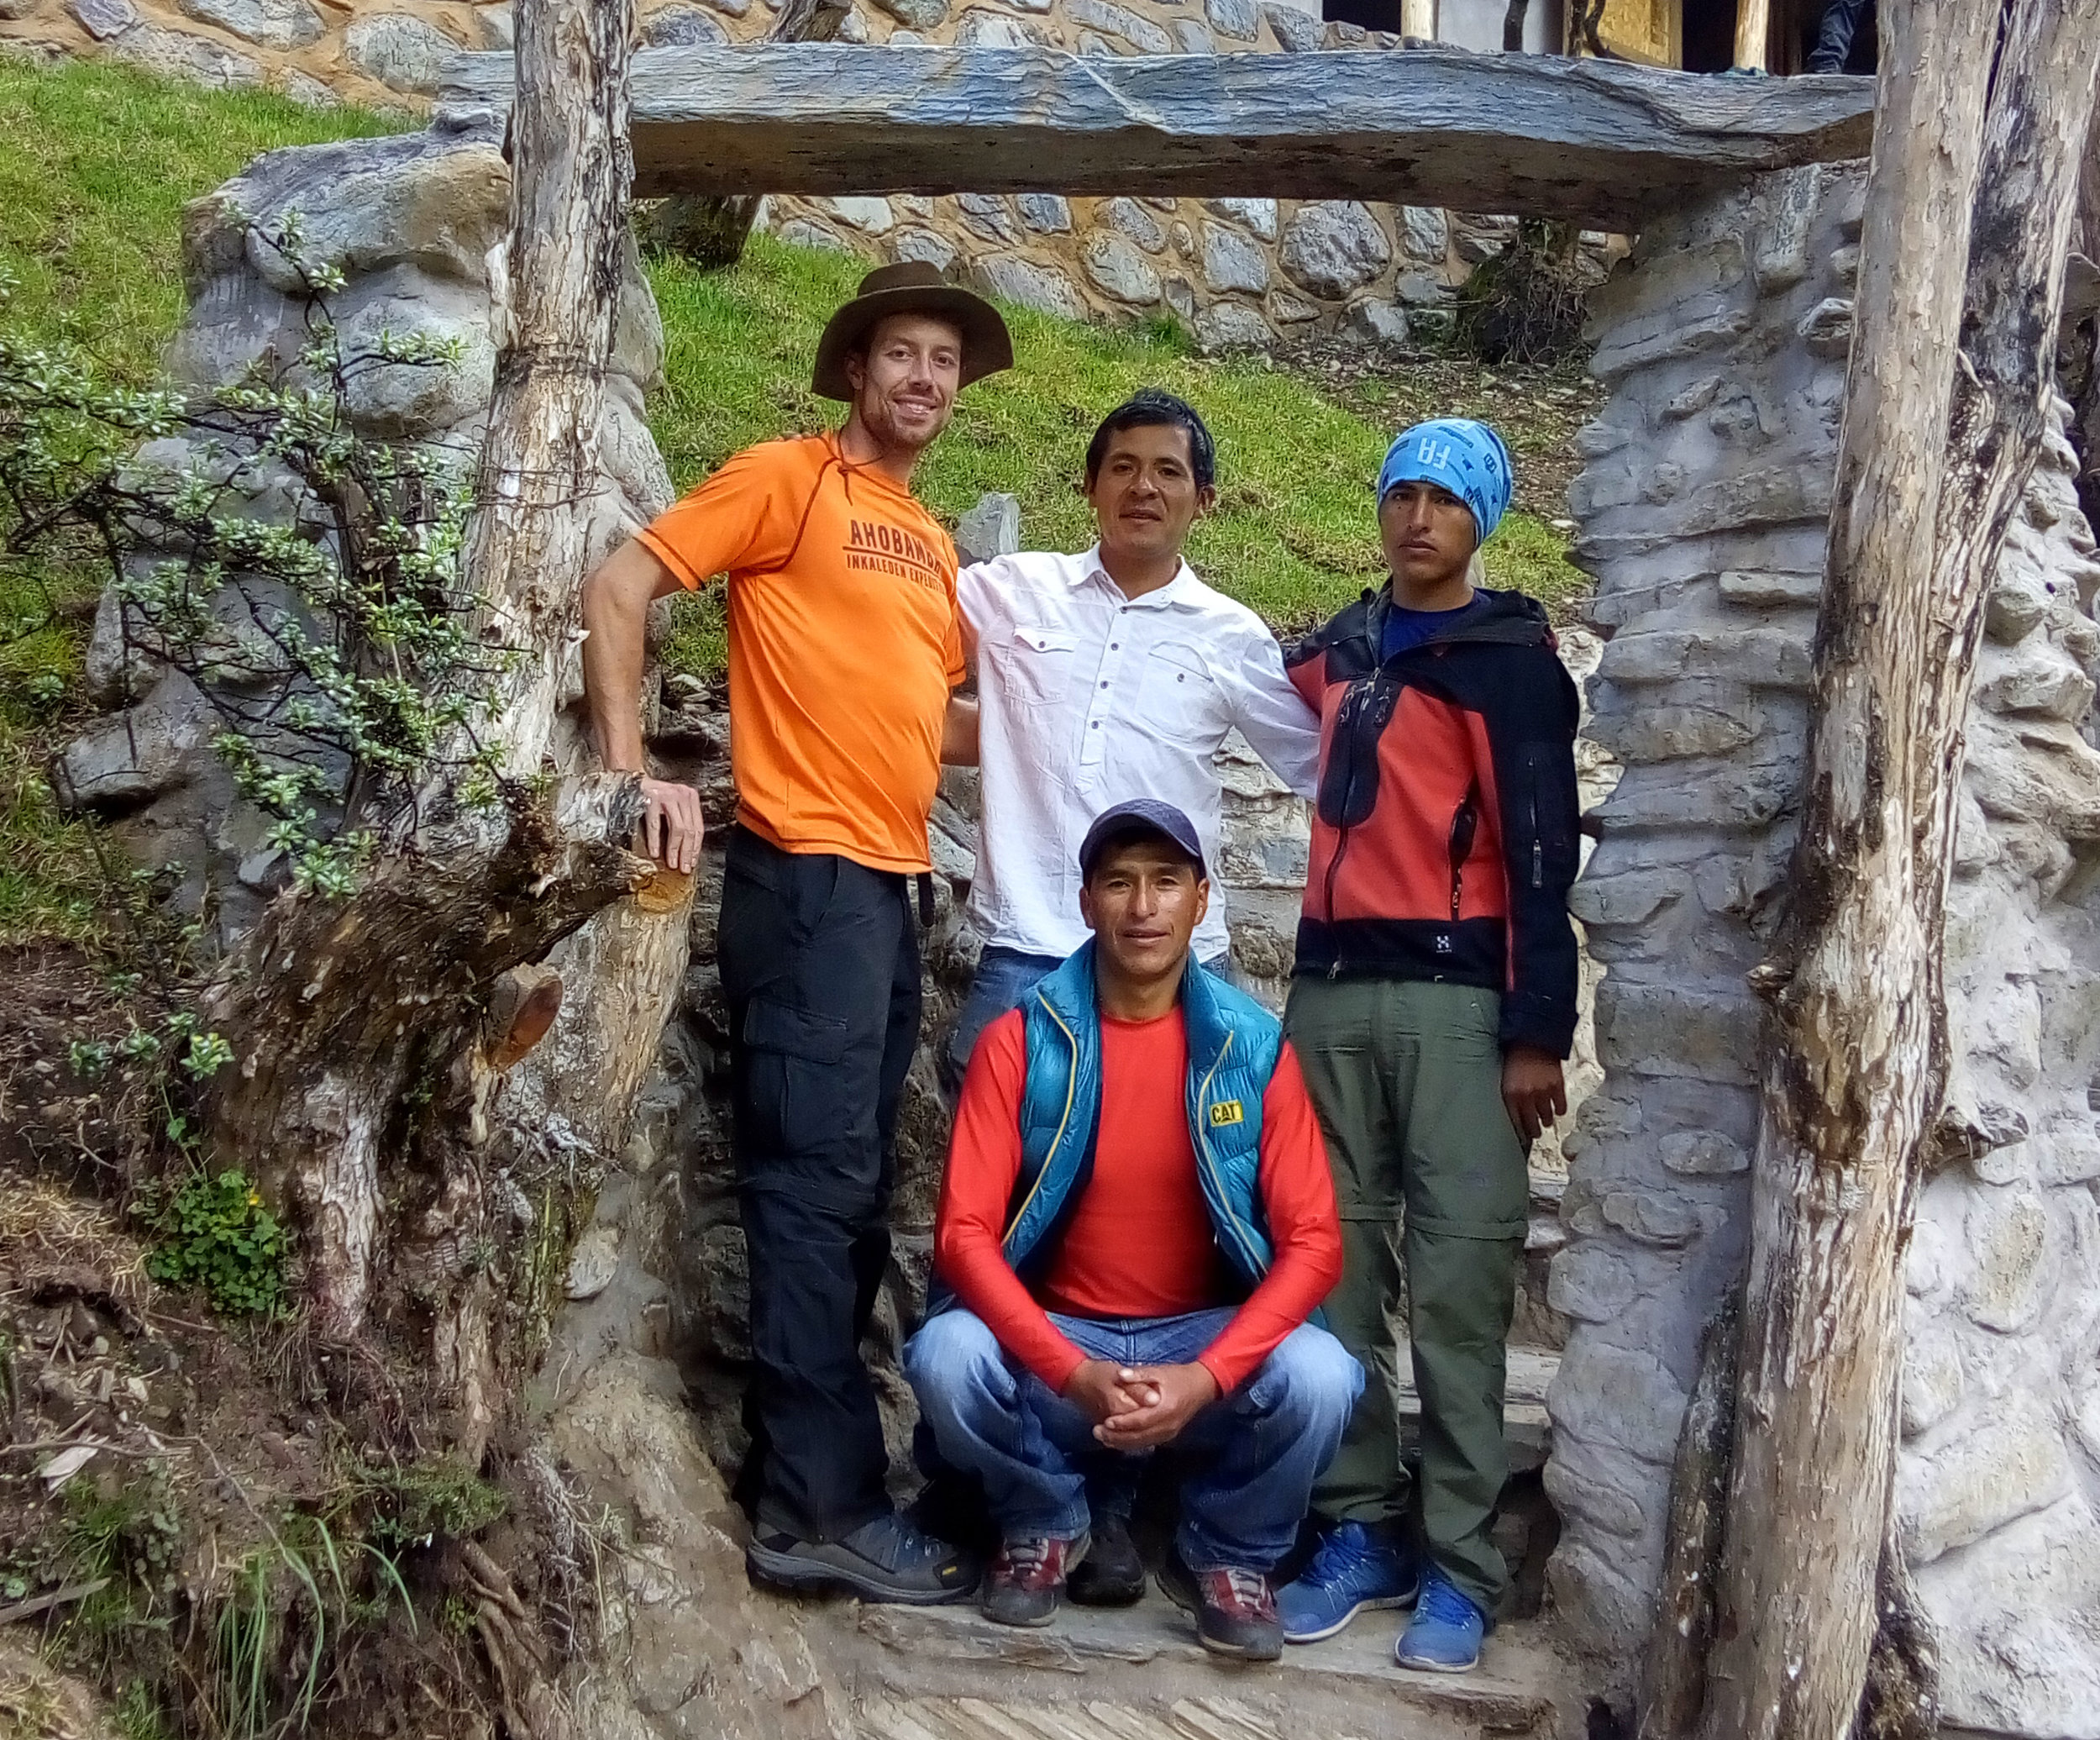 Edwin Espinoza,Macario & Luis Crispin - Edwin is the owner of the Soray Pampa Refuge.Macario and Luis are from the Ausangate area and are our main support staff. We have all stood on the summit of Salkantay.